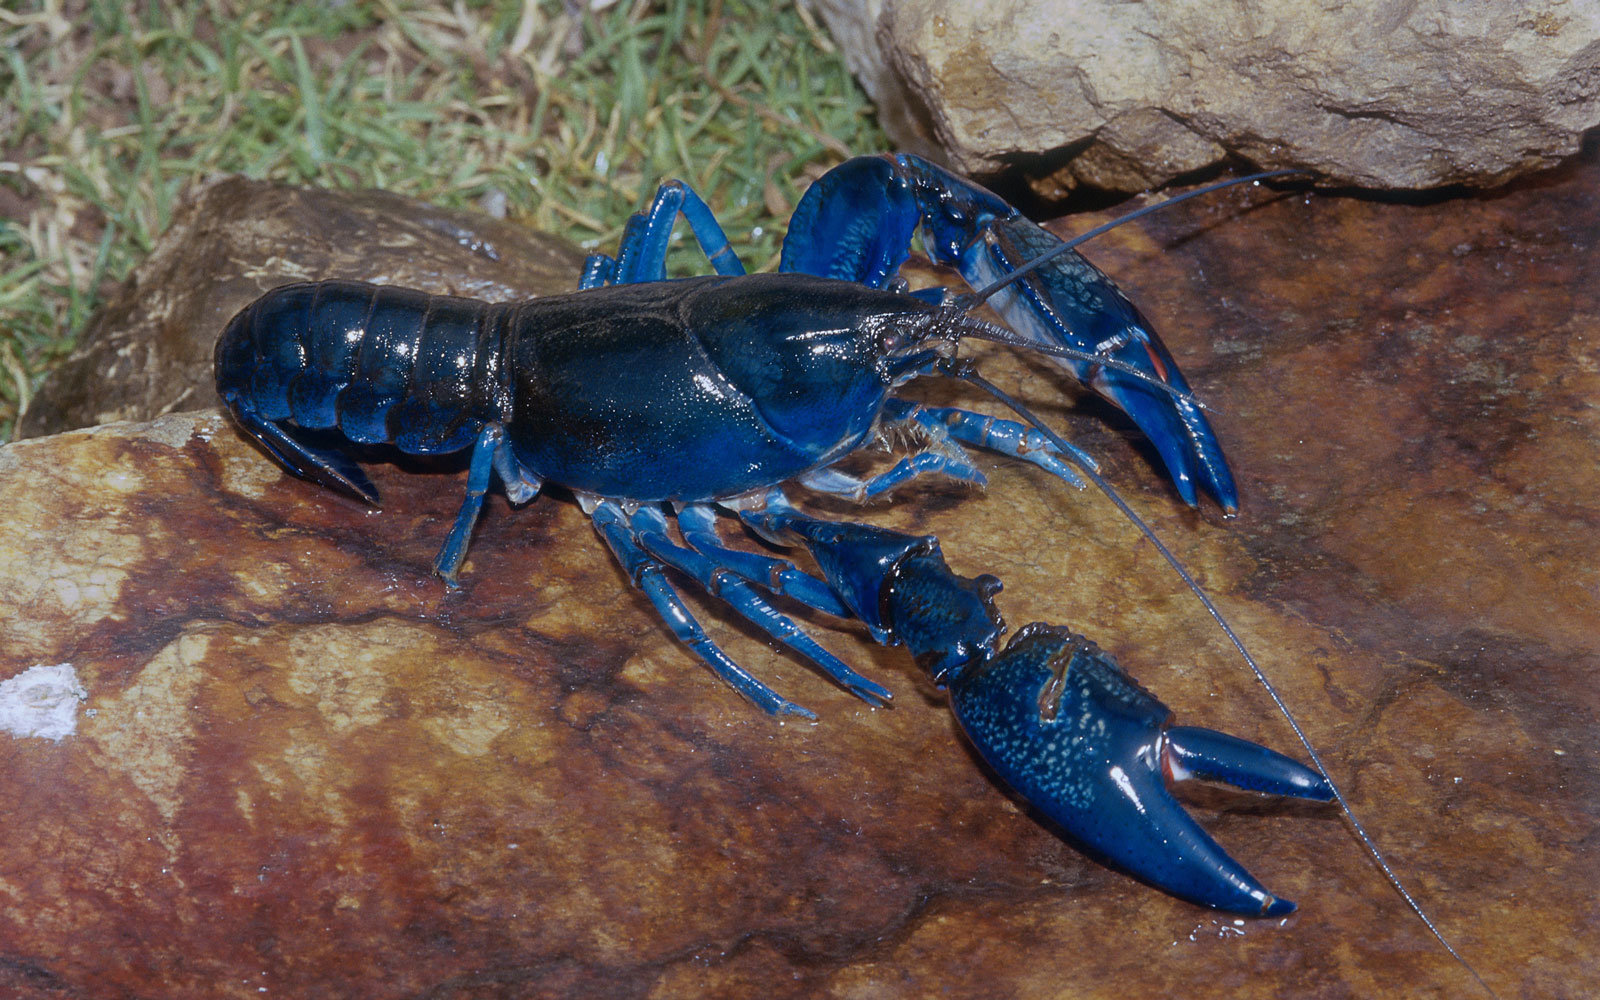 A blue lobster.